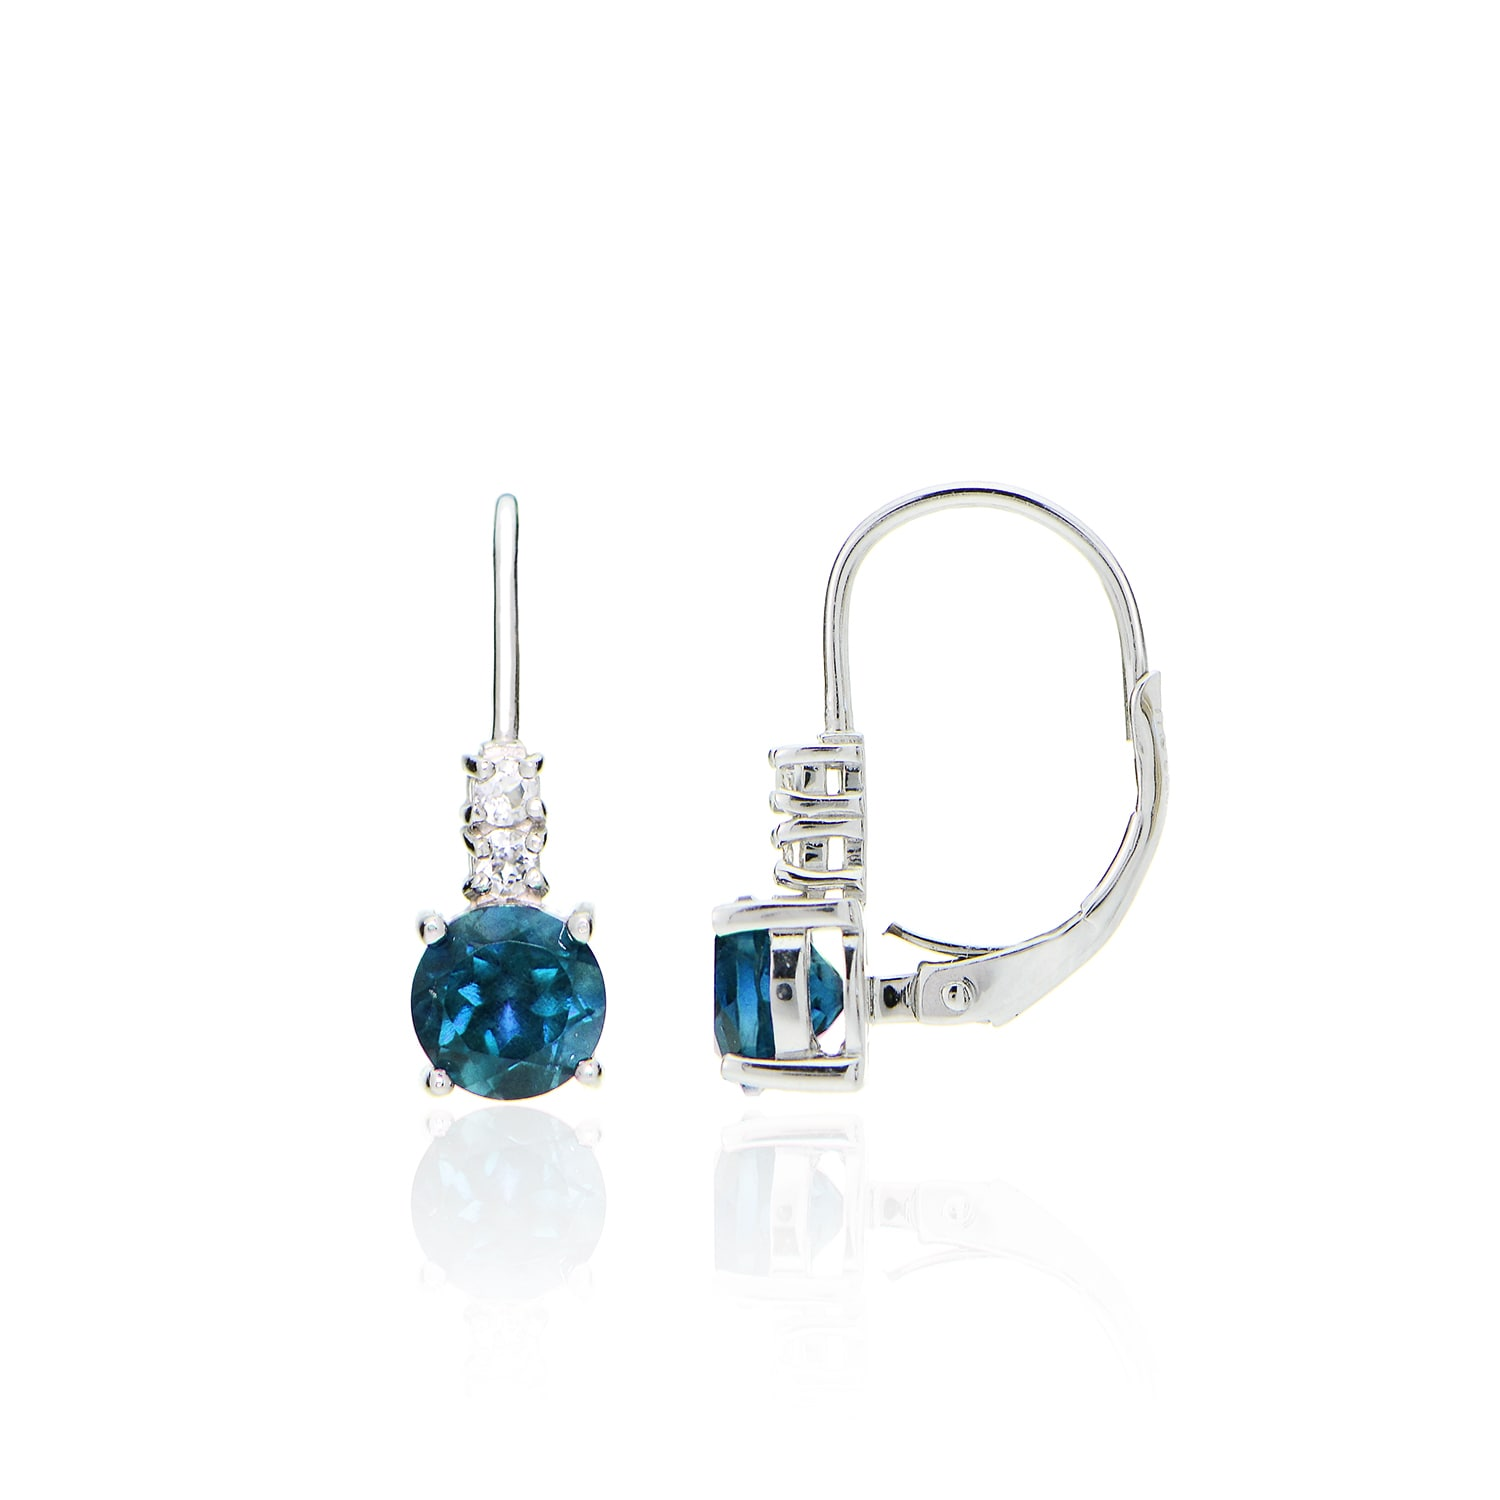 Sterling Silver 2ct London Blue /& White Topaz Round Leverback Earring